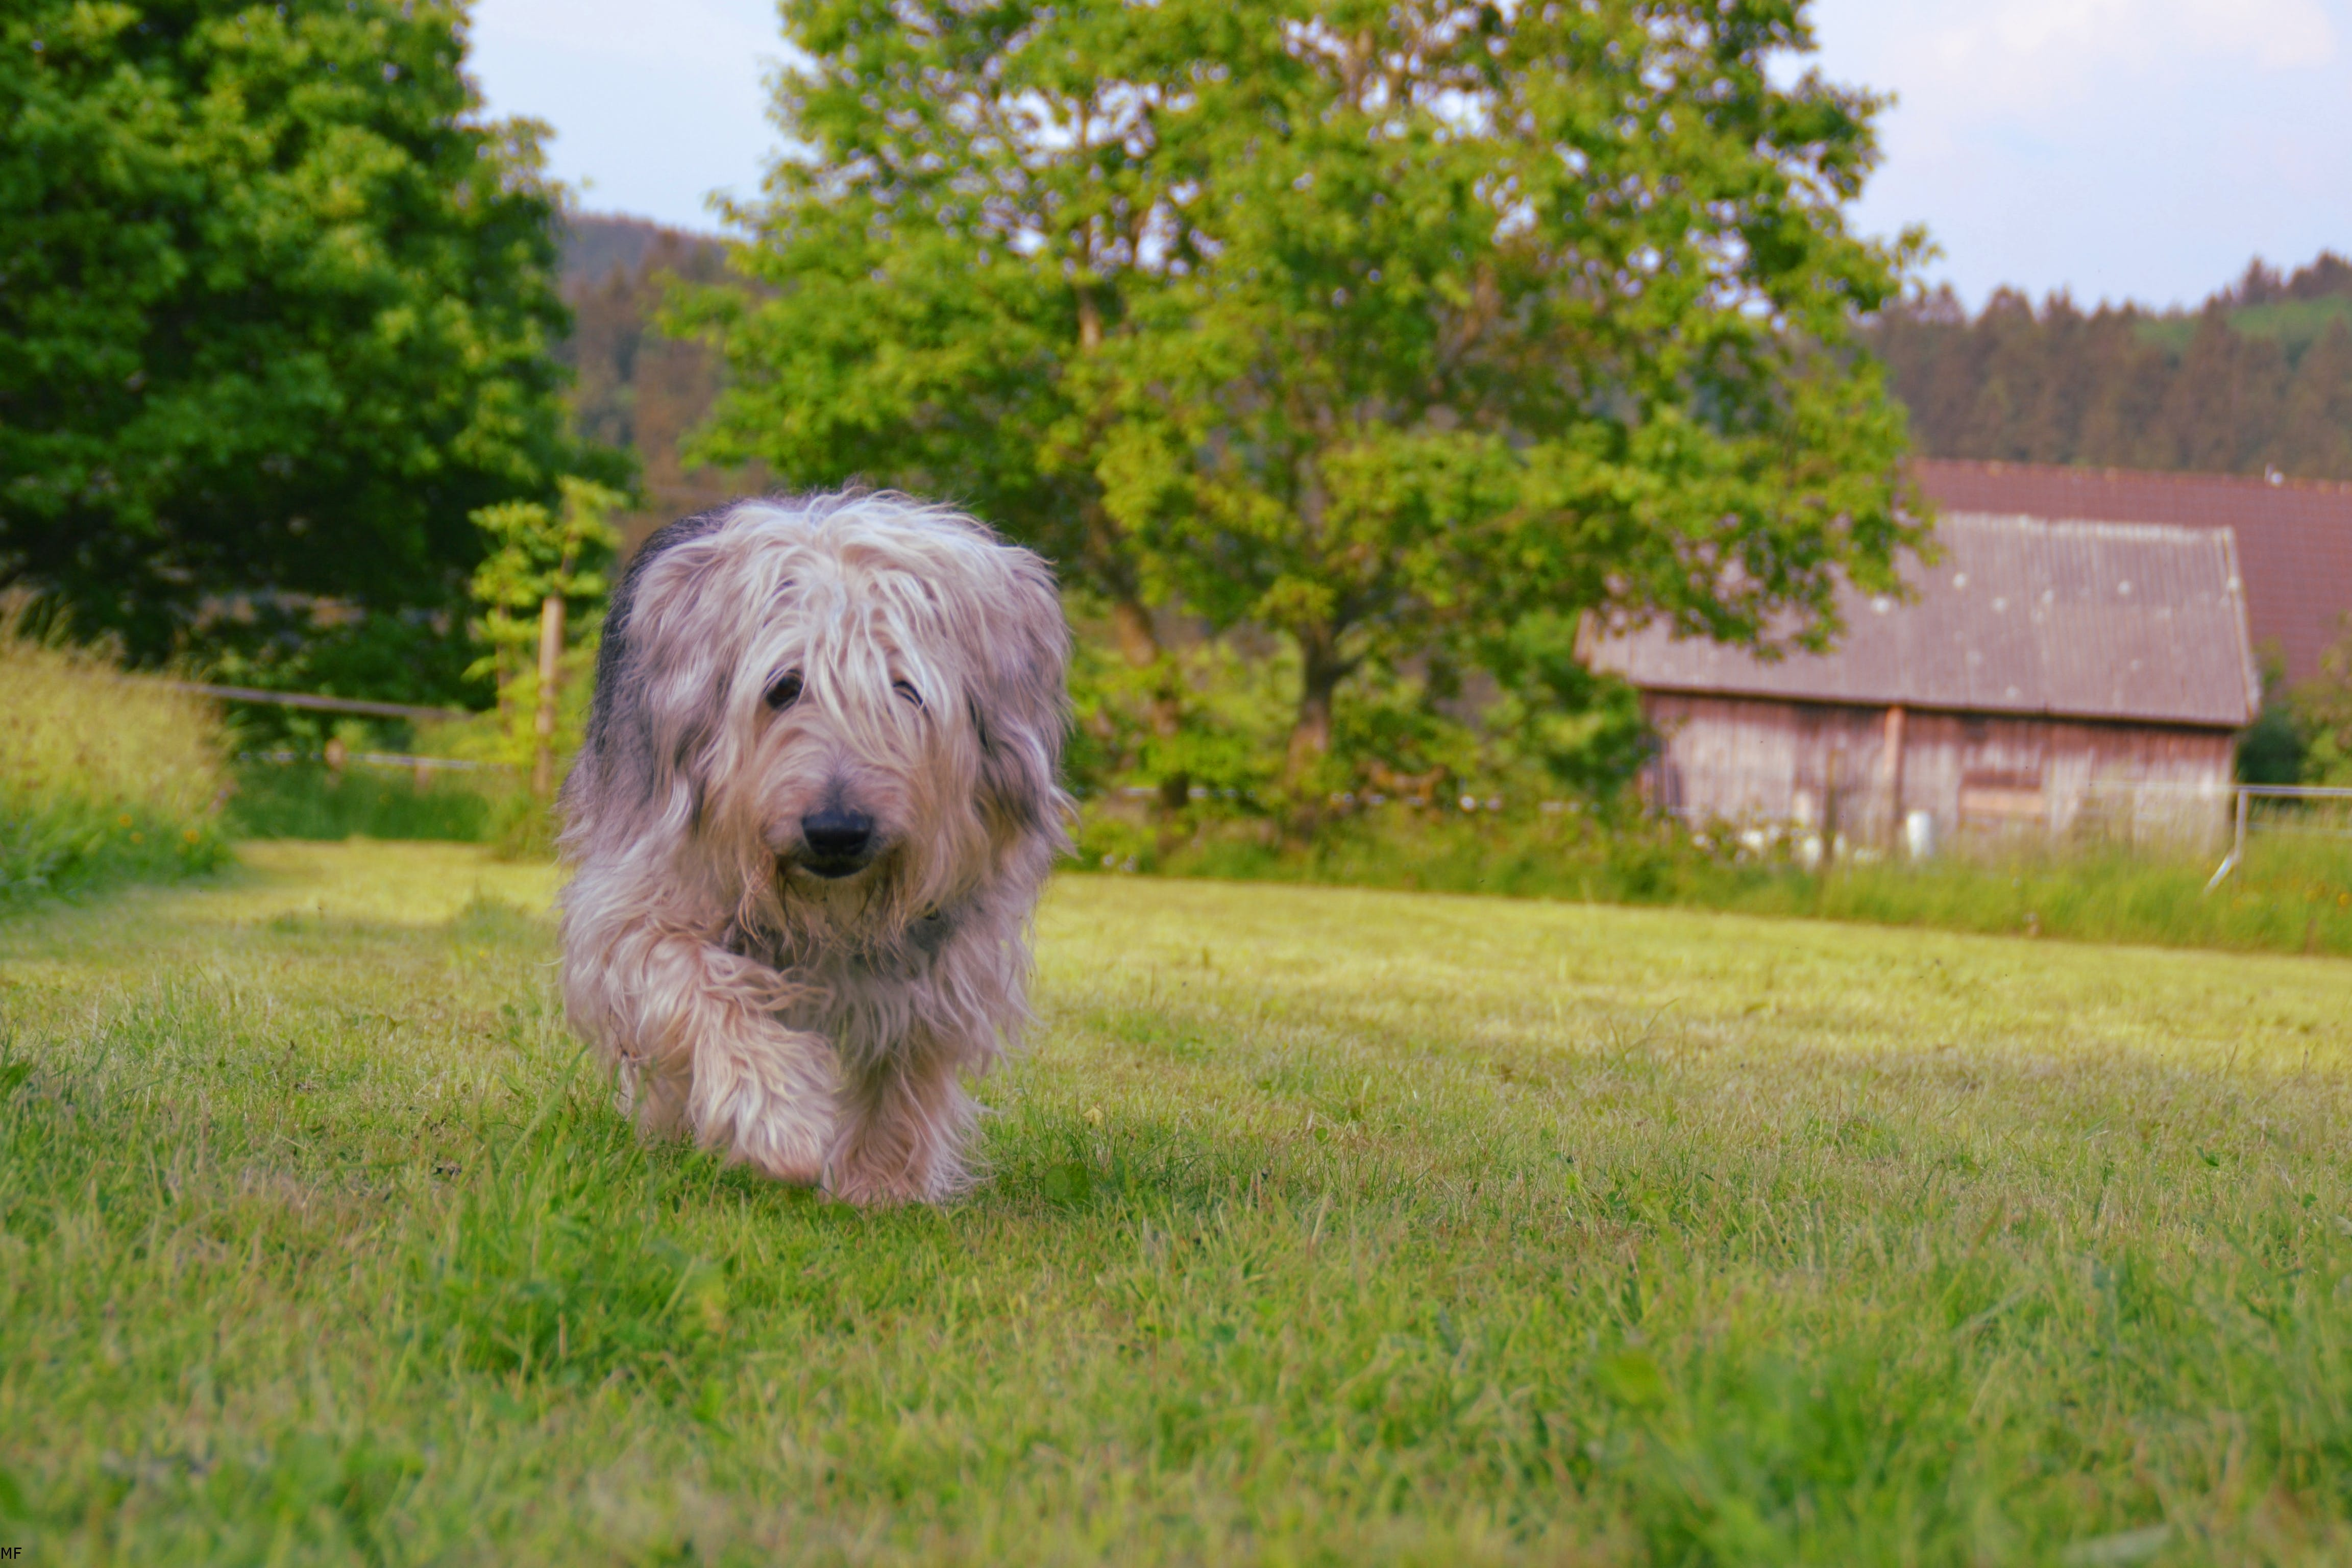 Brown Gray and White Hairy Medium Size Dog Walking on Green Grass Field during Daytime